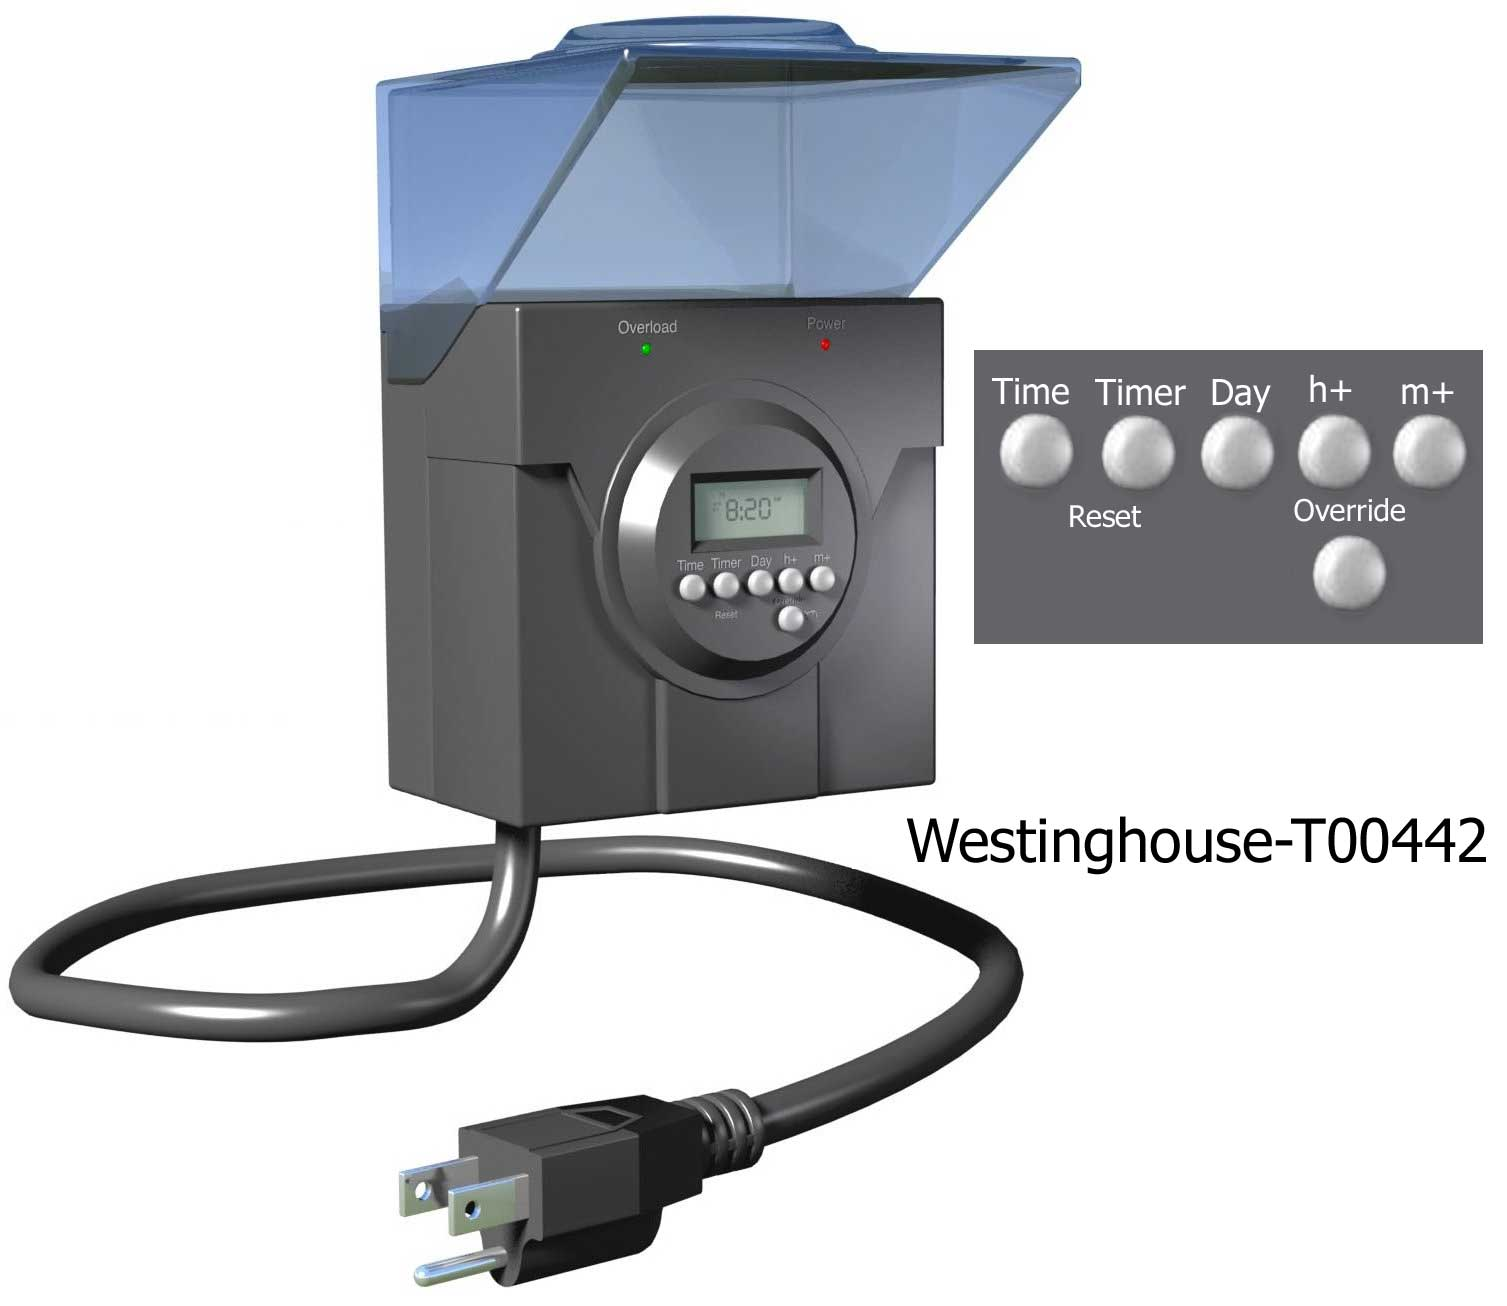 Digital Outdoor Light Timer Westinghouse timers and manuals larger image workwithnaturefo